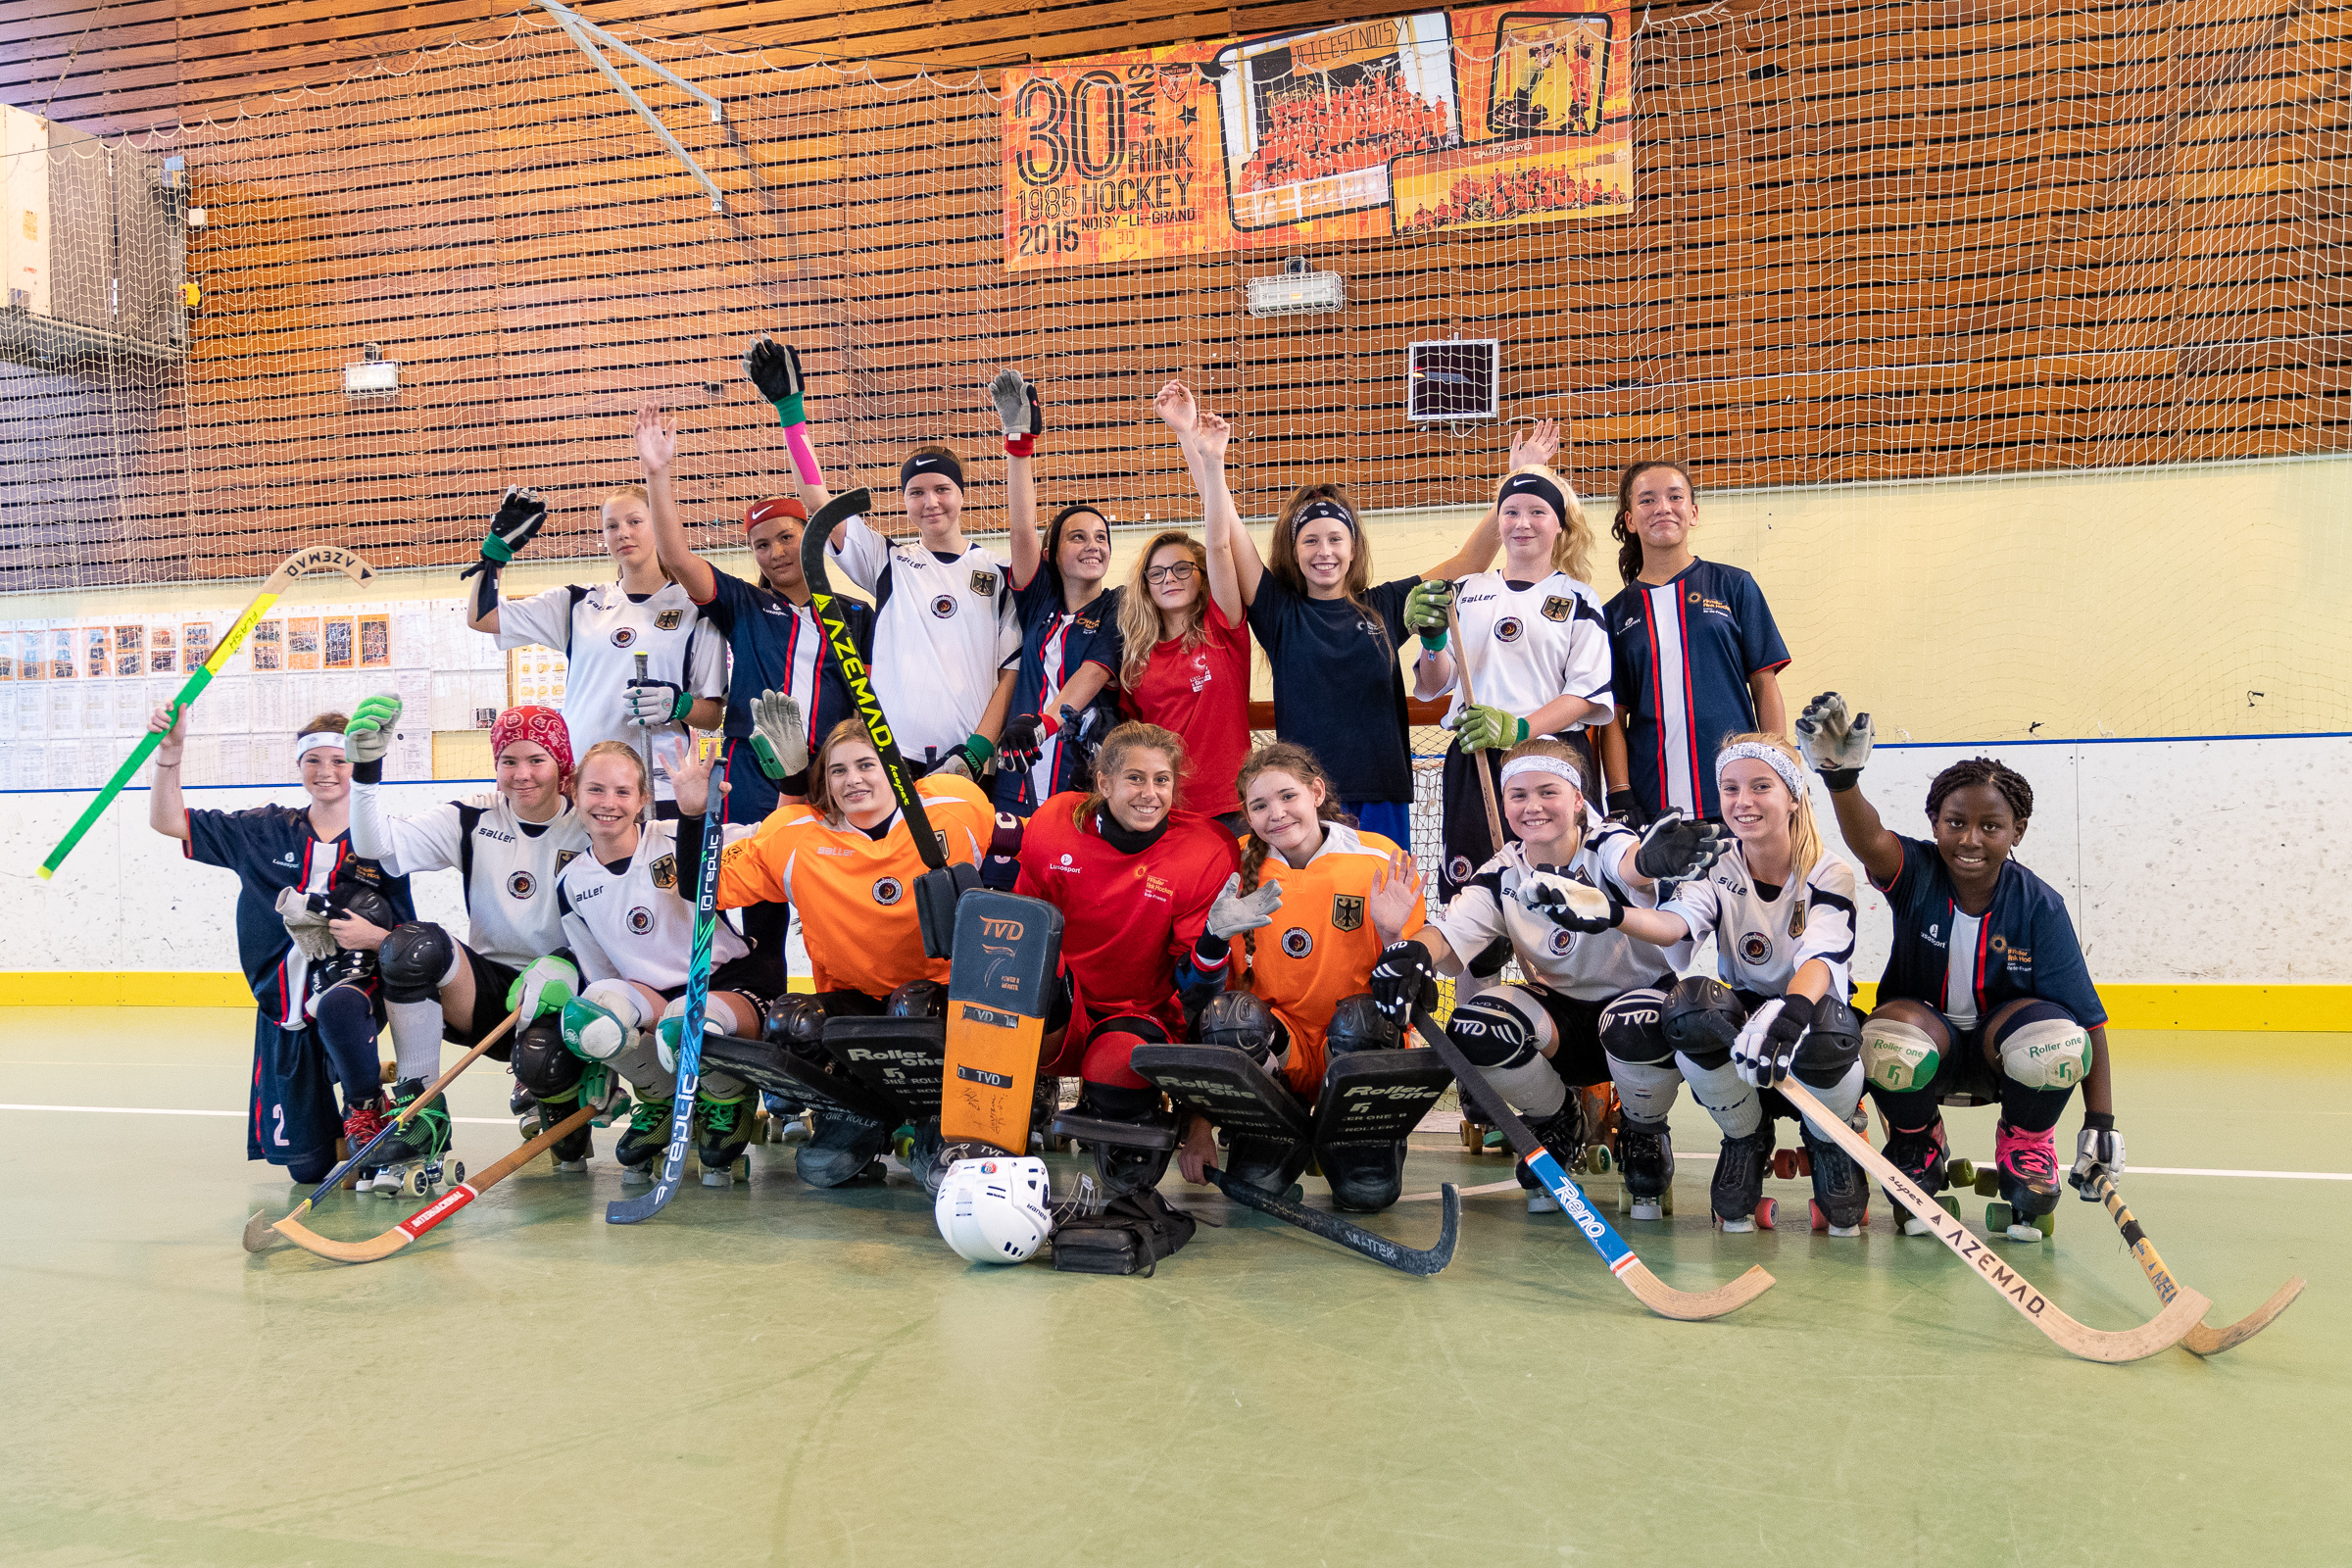 Rollhockey Nationalmannschaft U15w Turnier in Noisy Le Grand (Frankreich)